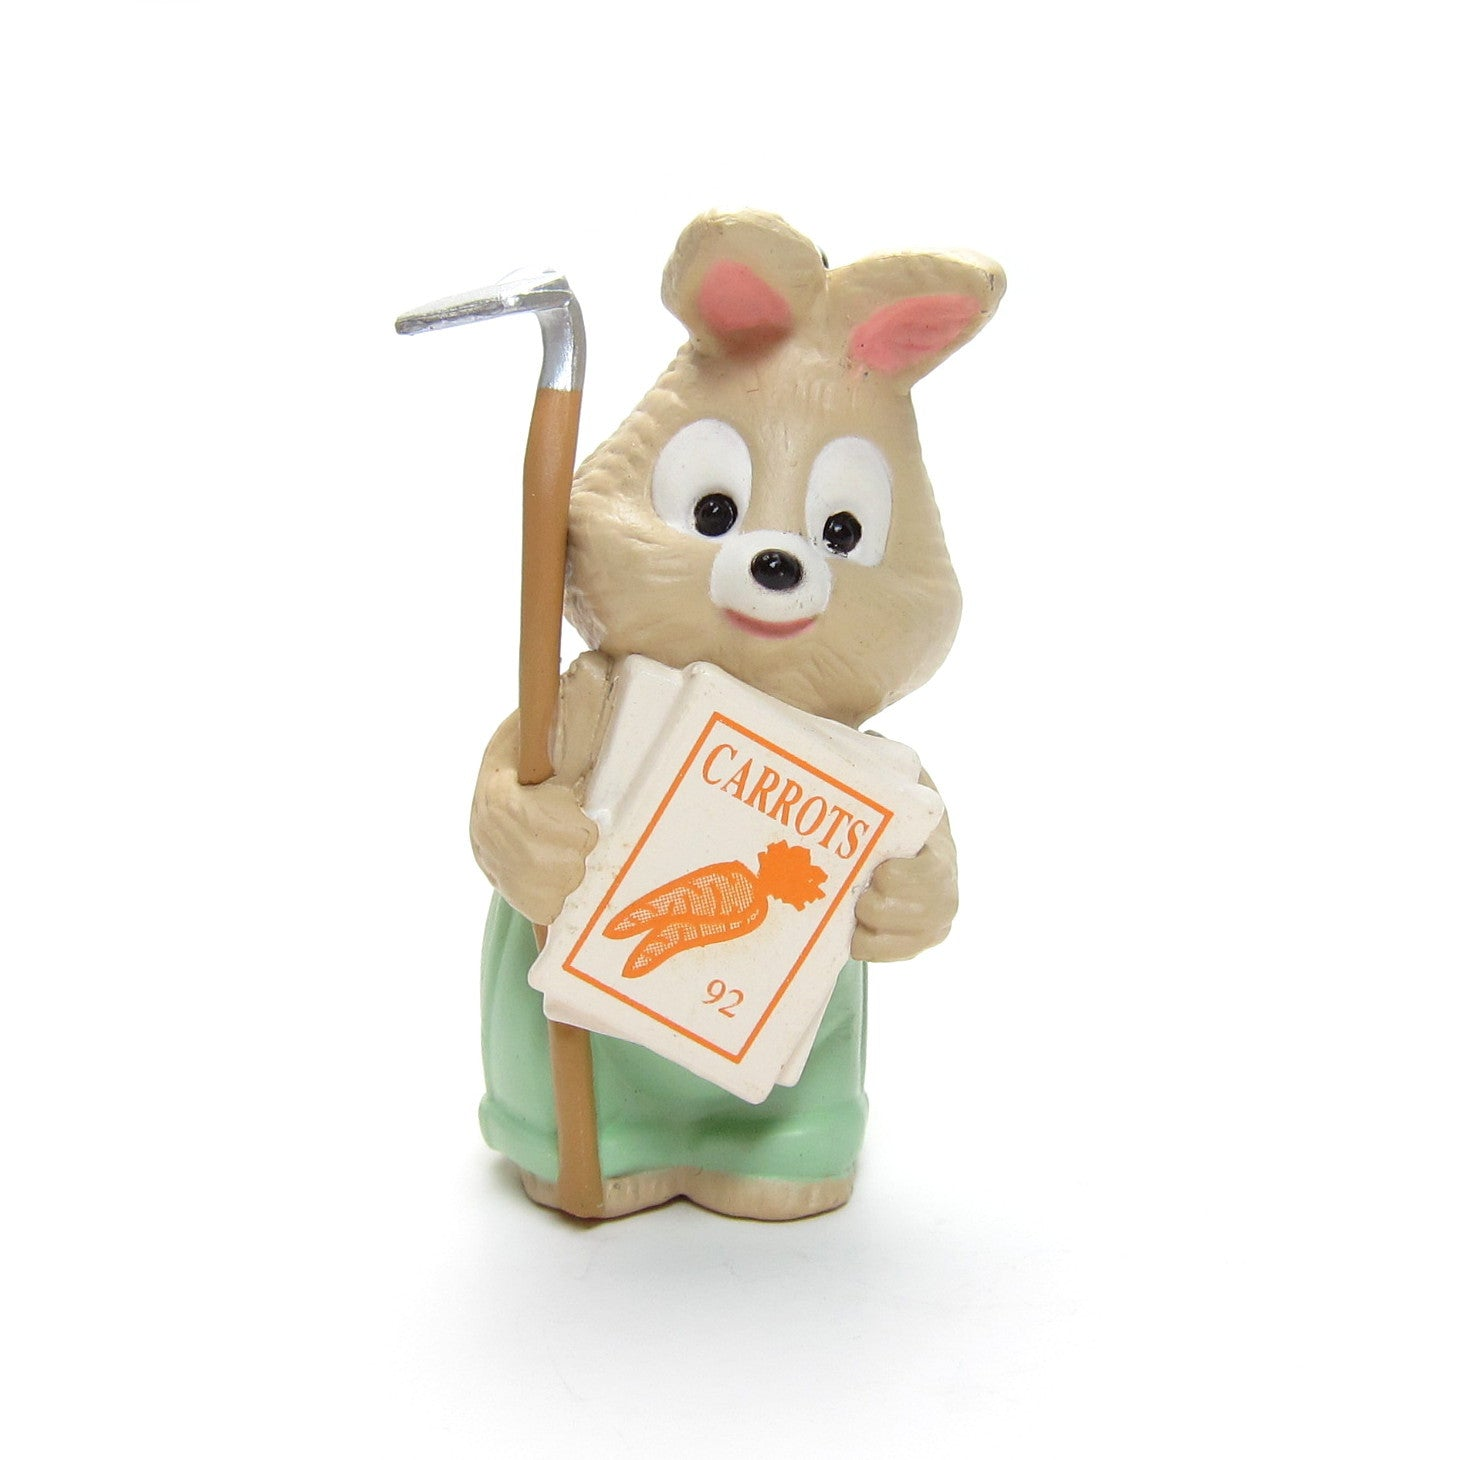 Hallmark Cultivated Gardener Easter ornament